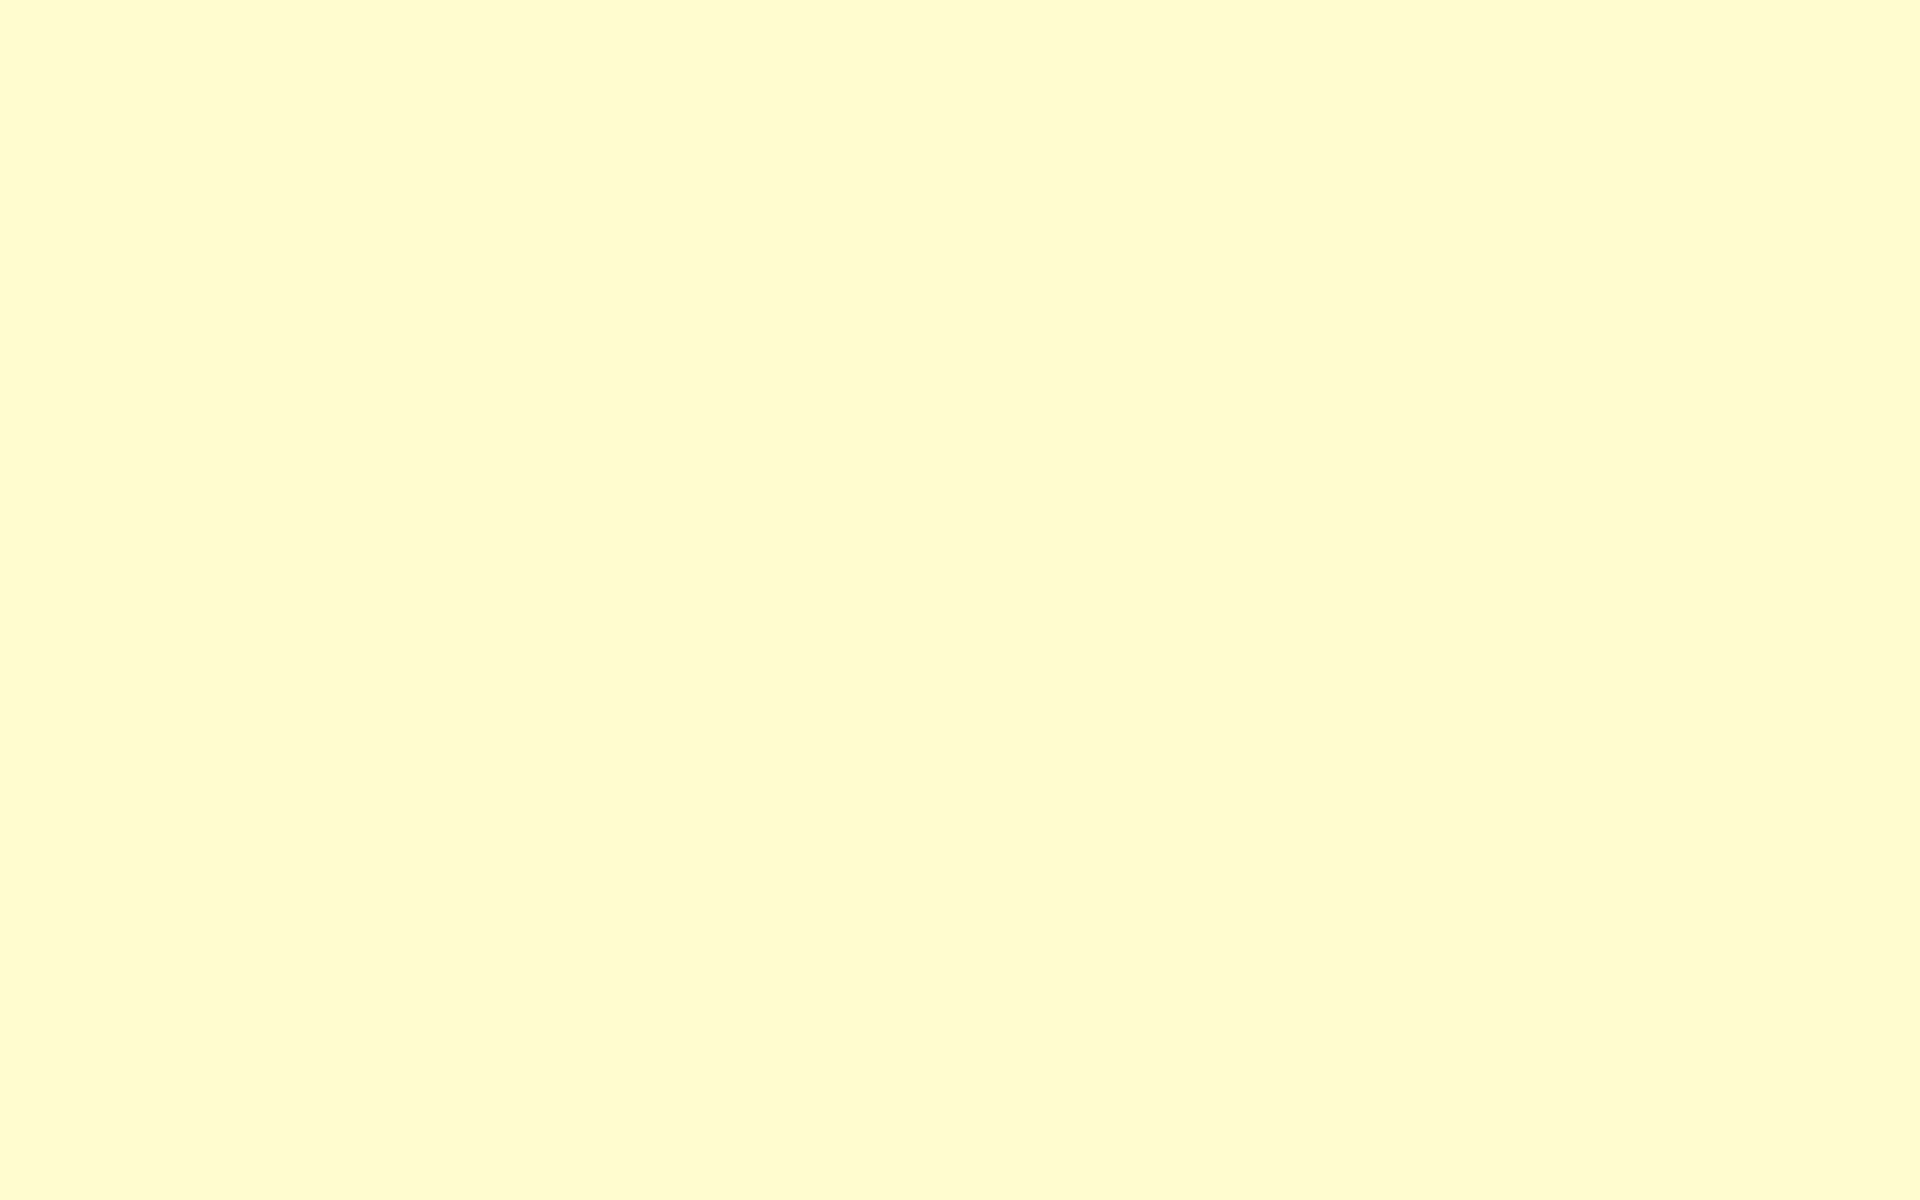 Cream Background submited images 1920x1200